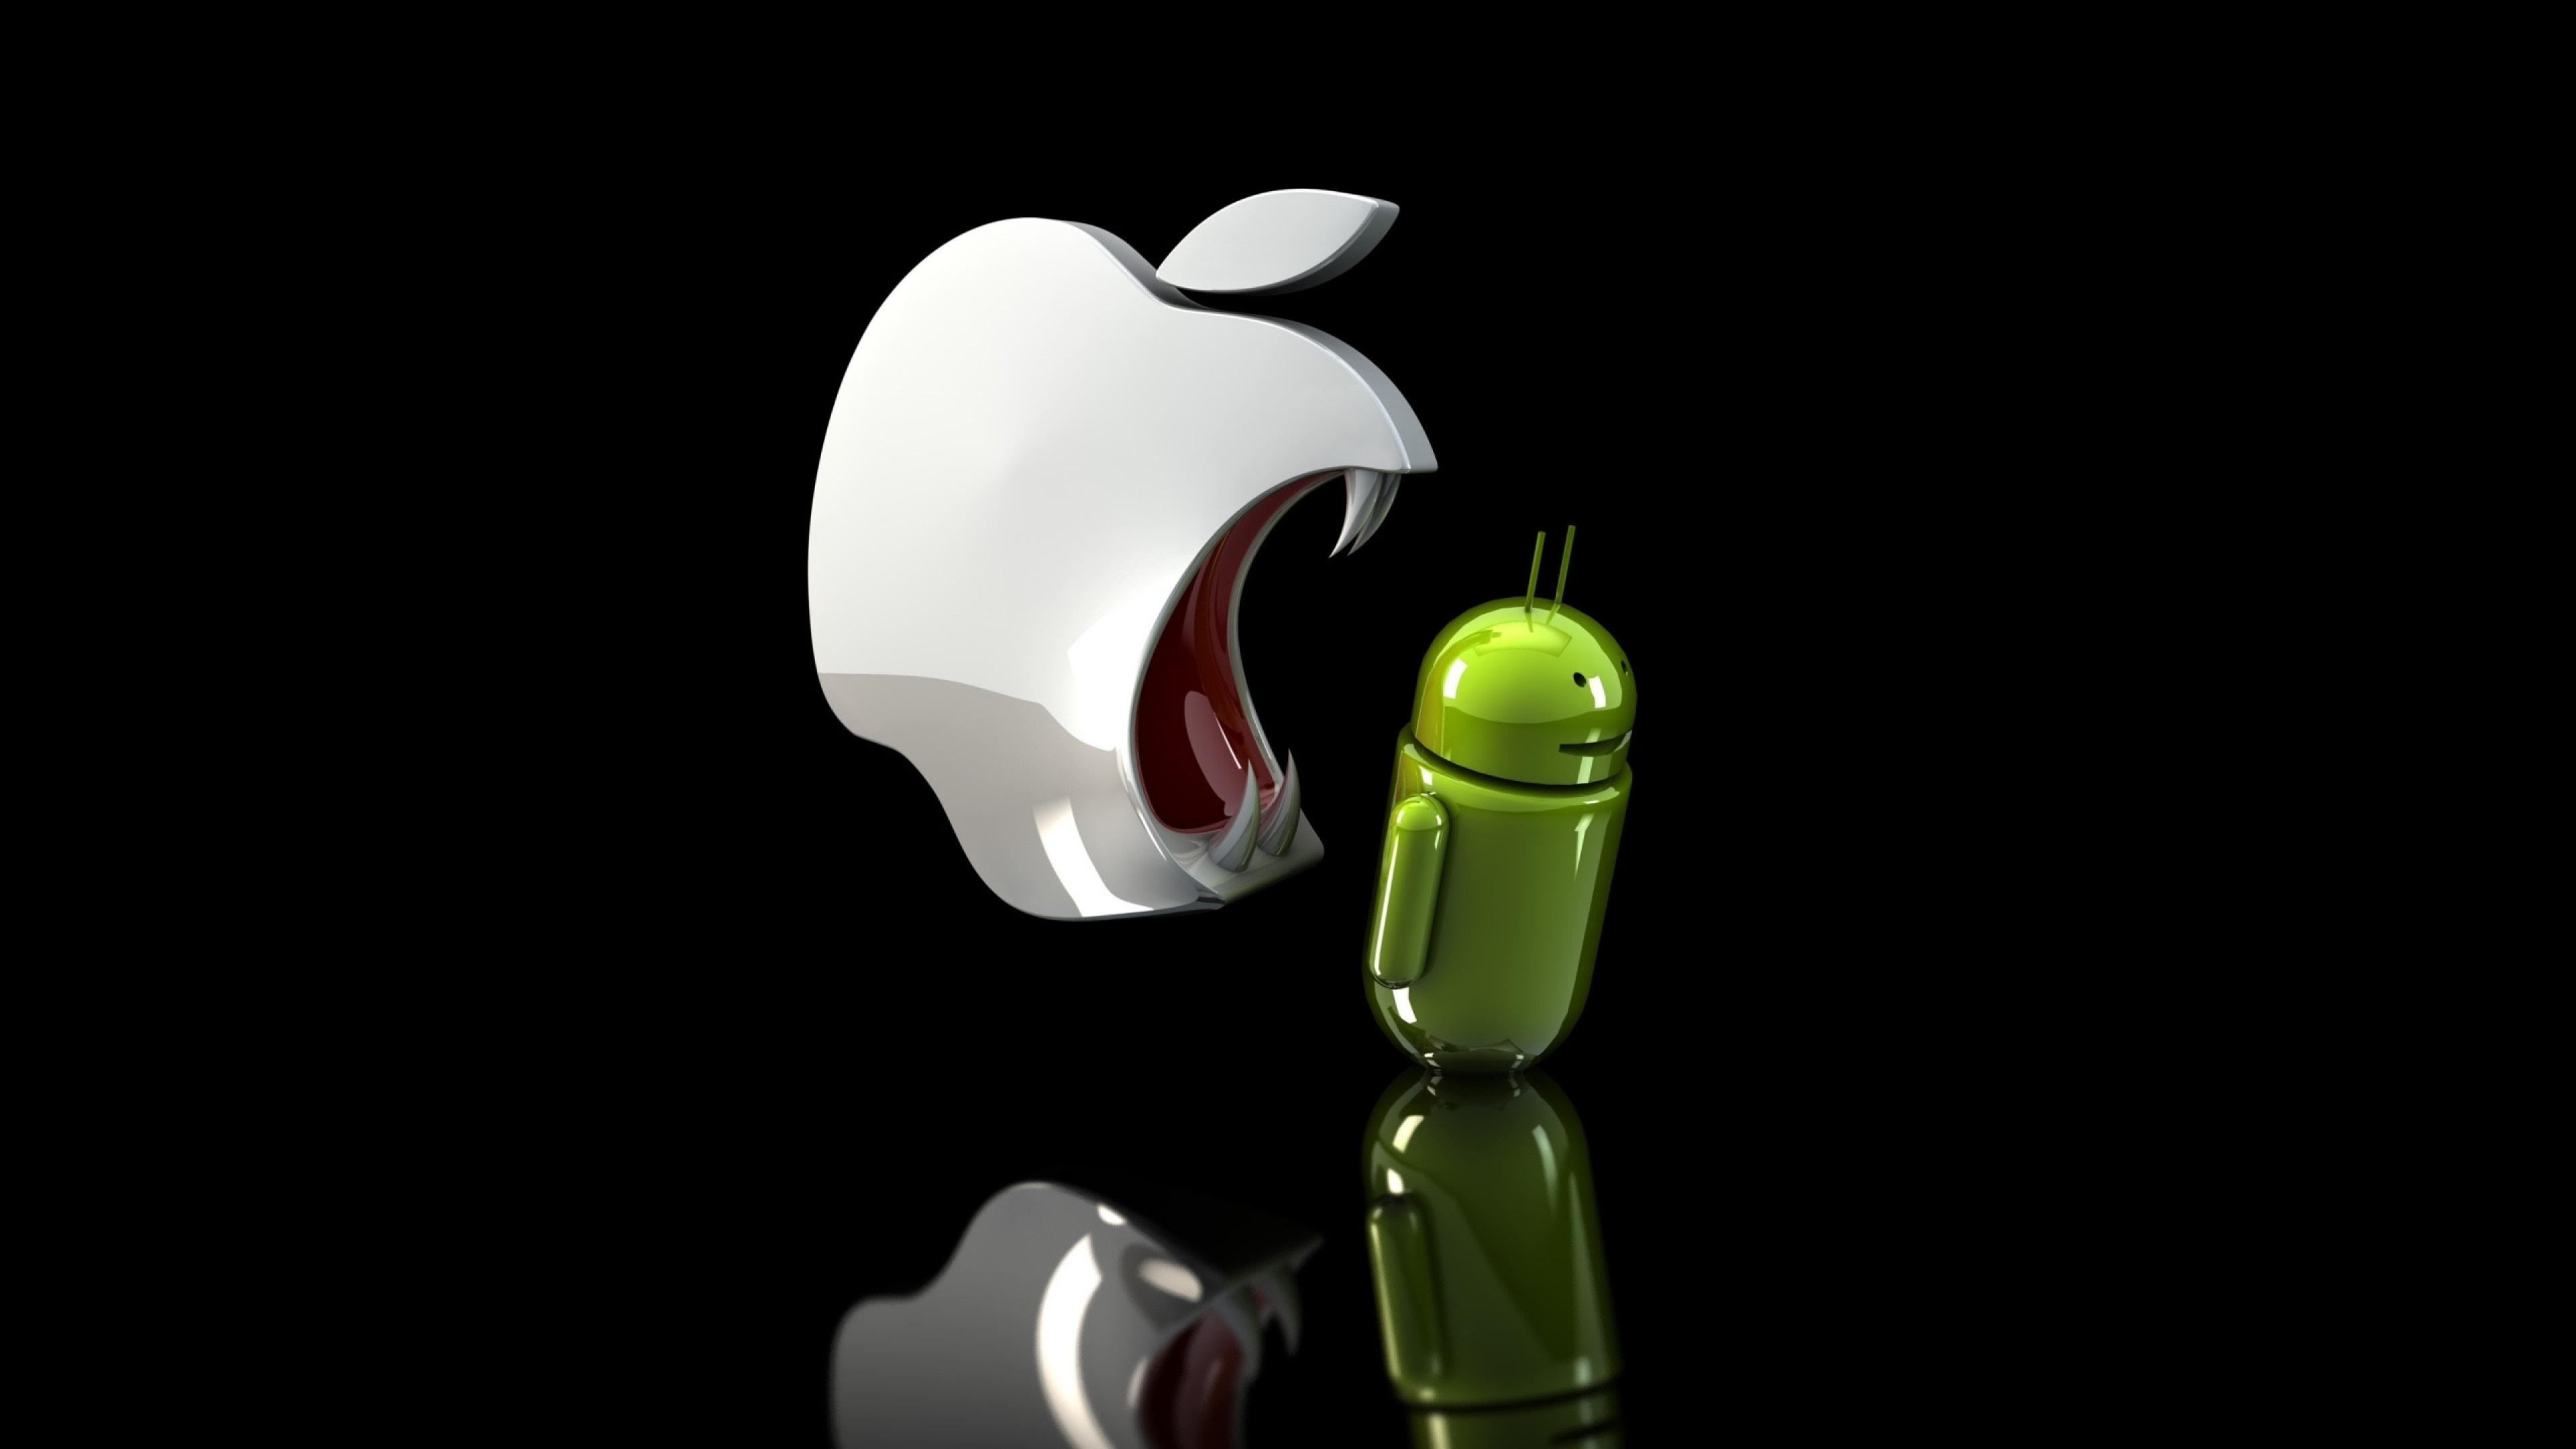 Apple Vs Android Wallpaper 63 Images